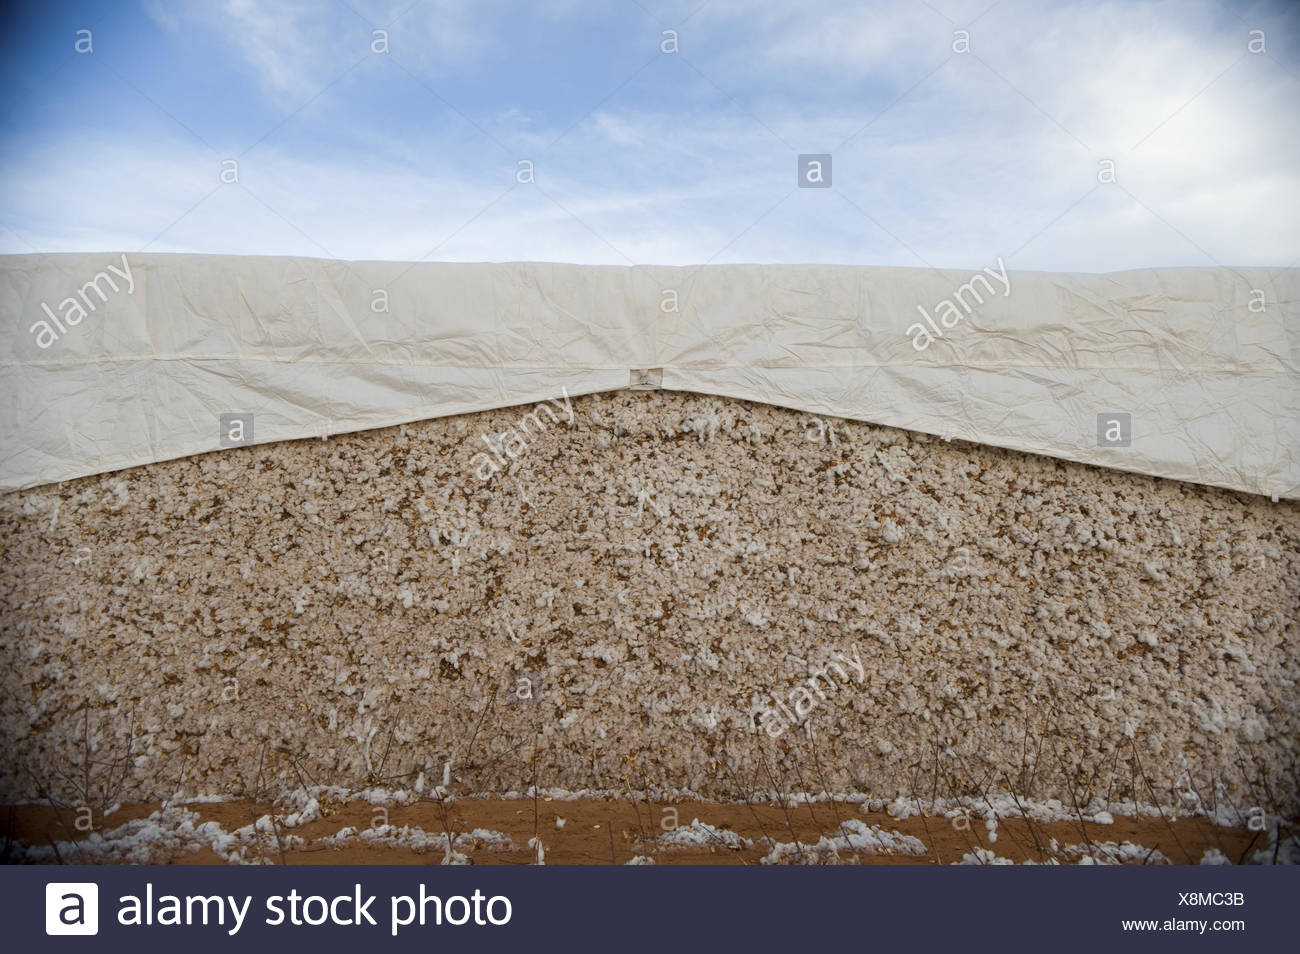 A bale of cotton covered with a tarp. - Stock Image